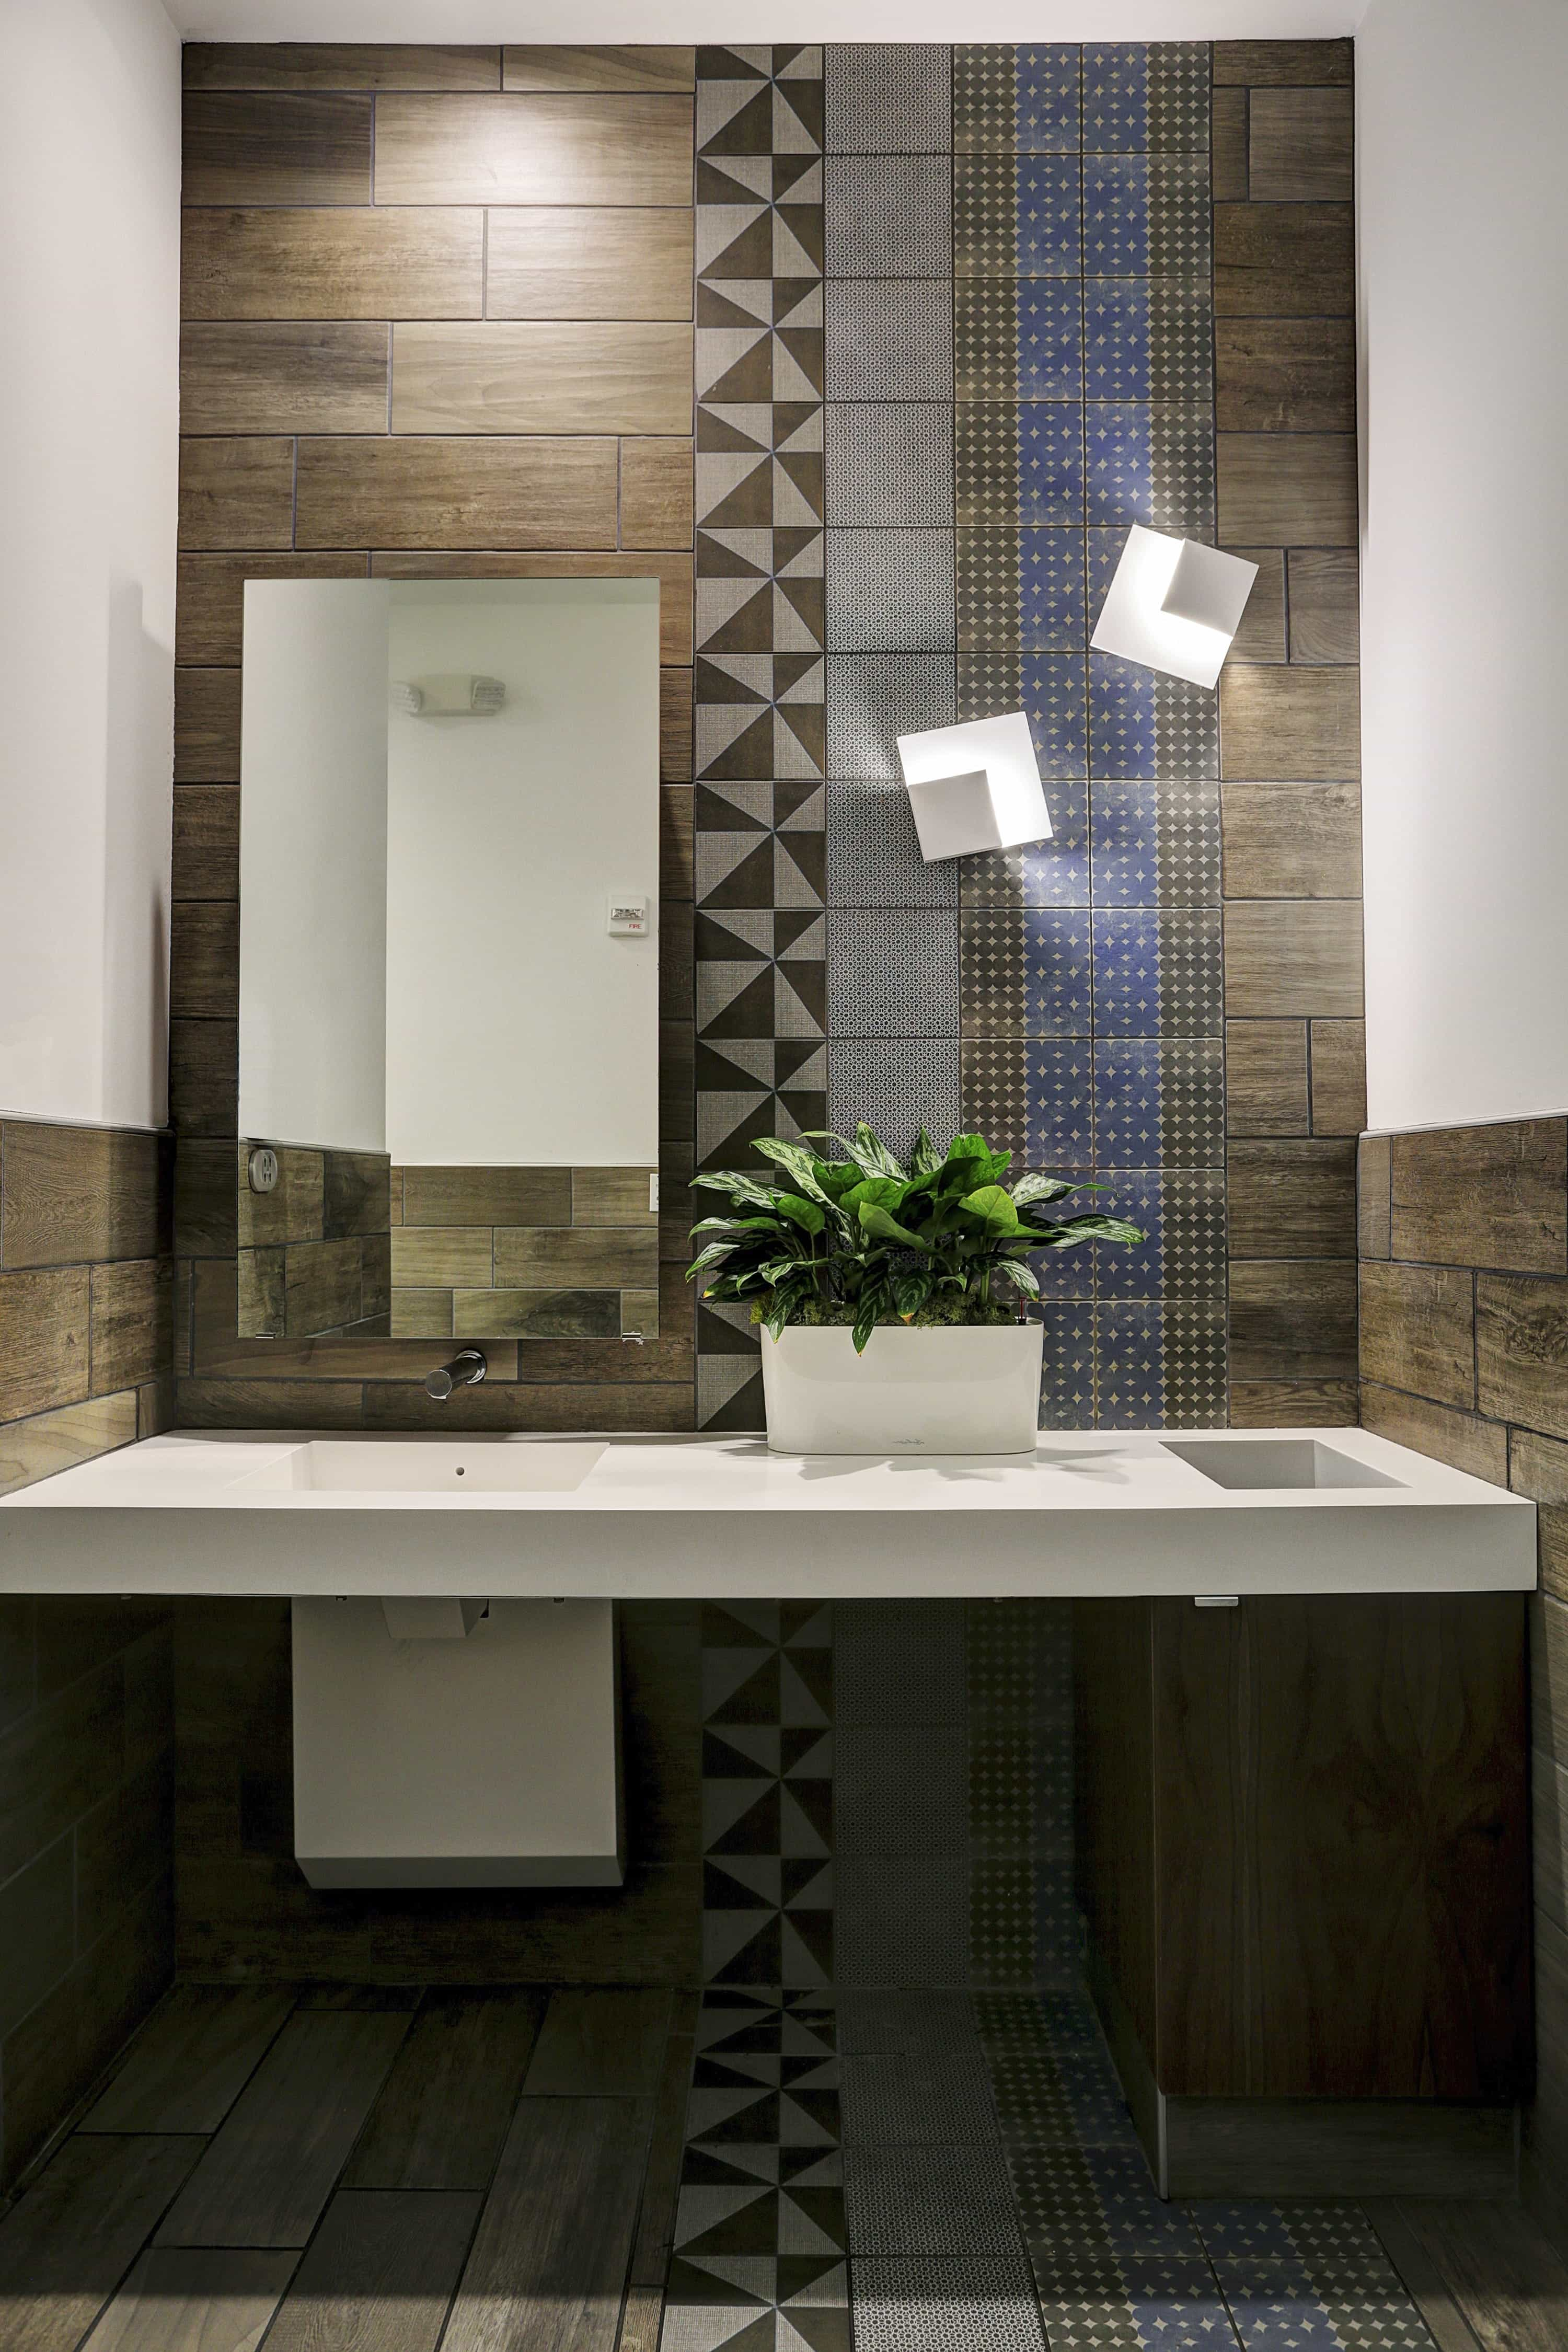 Featured Image of Patterned Artisan Tile For Modern Bathroom Wall